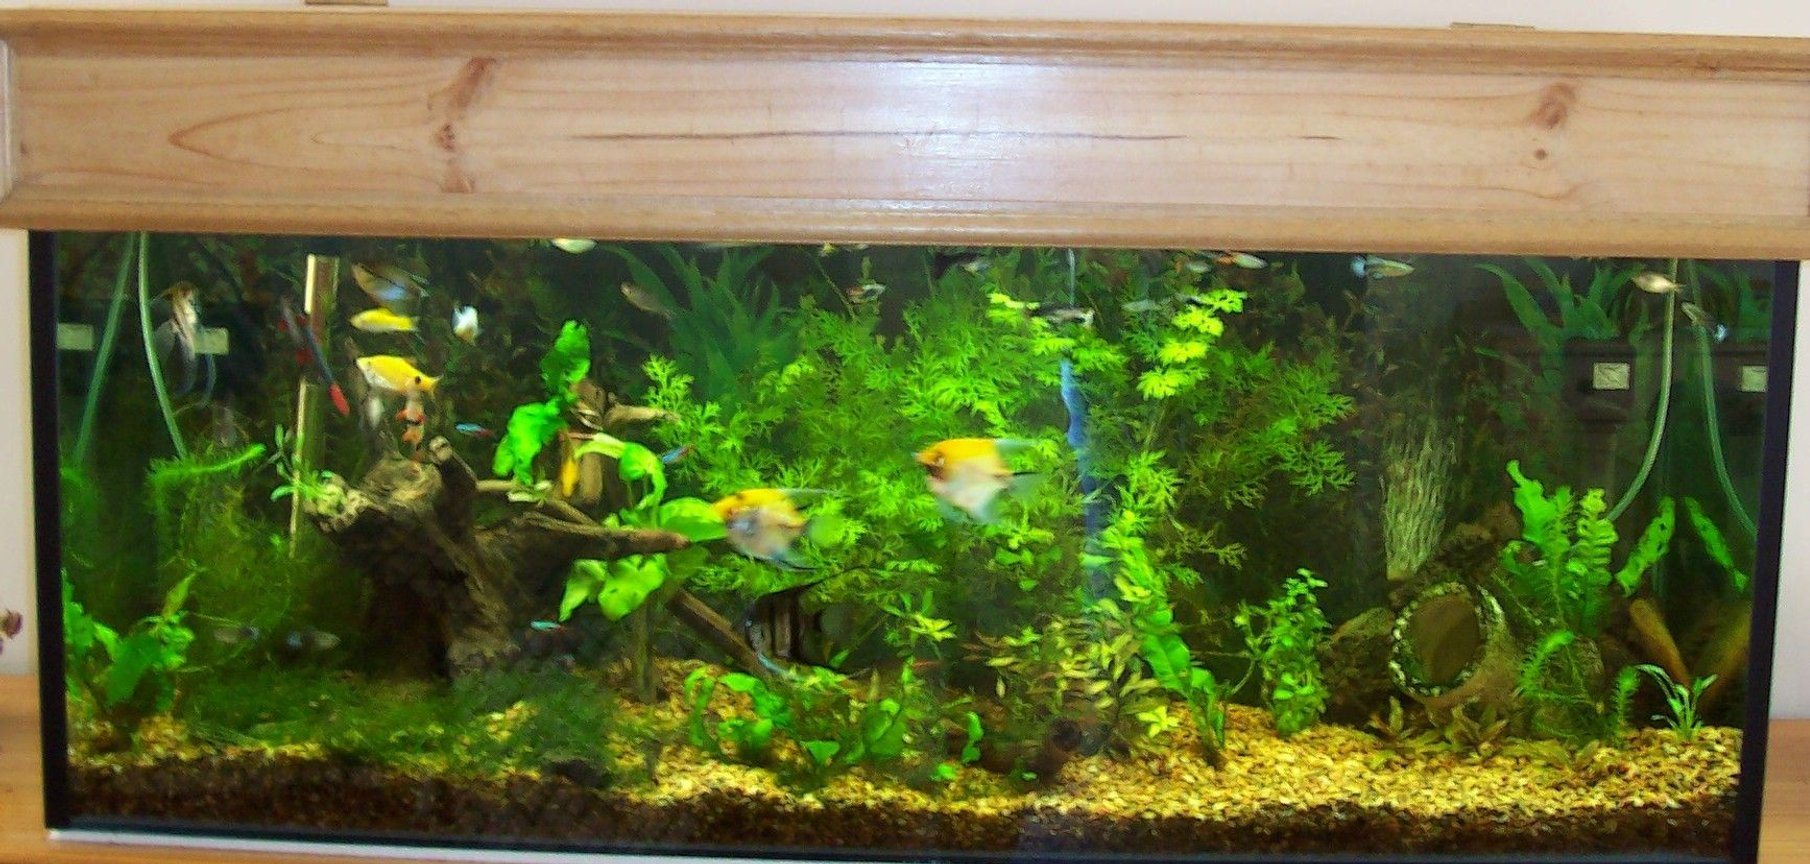 50 gallons planted tank (mostly live plants and fish) - 4 ft tropical community tank with assorted plants, no co2.